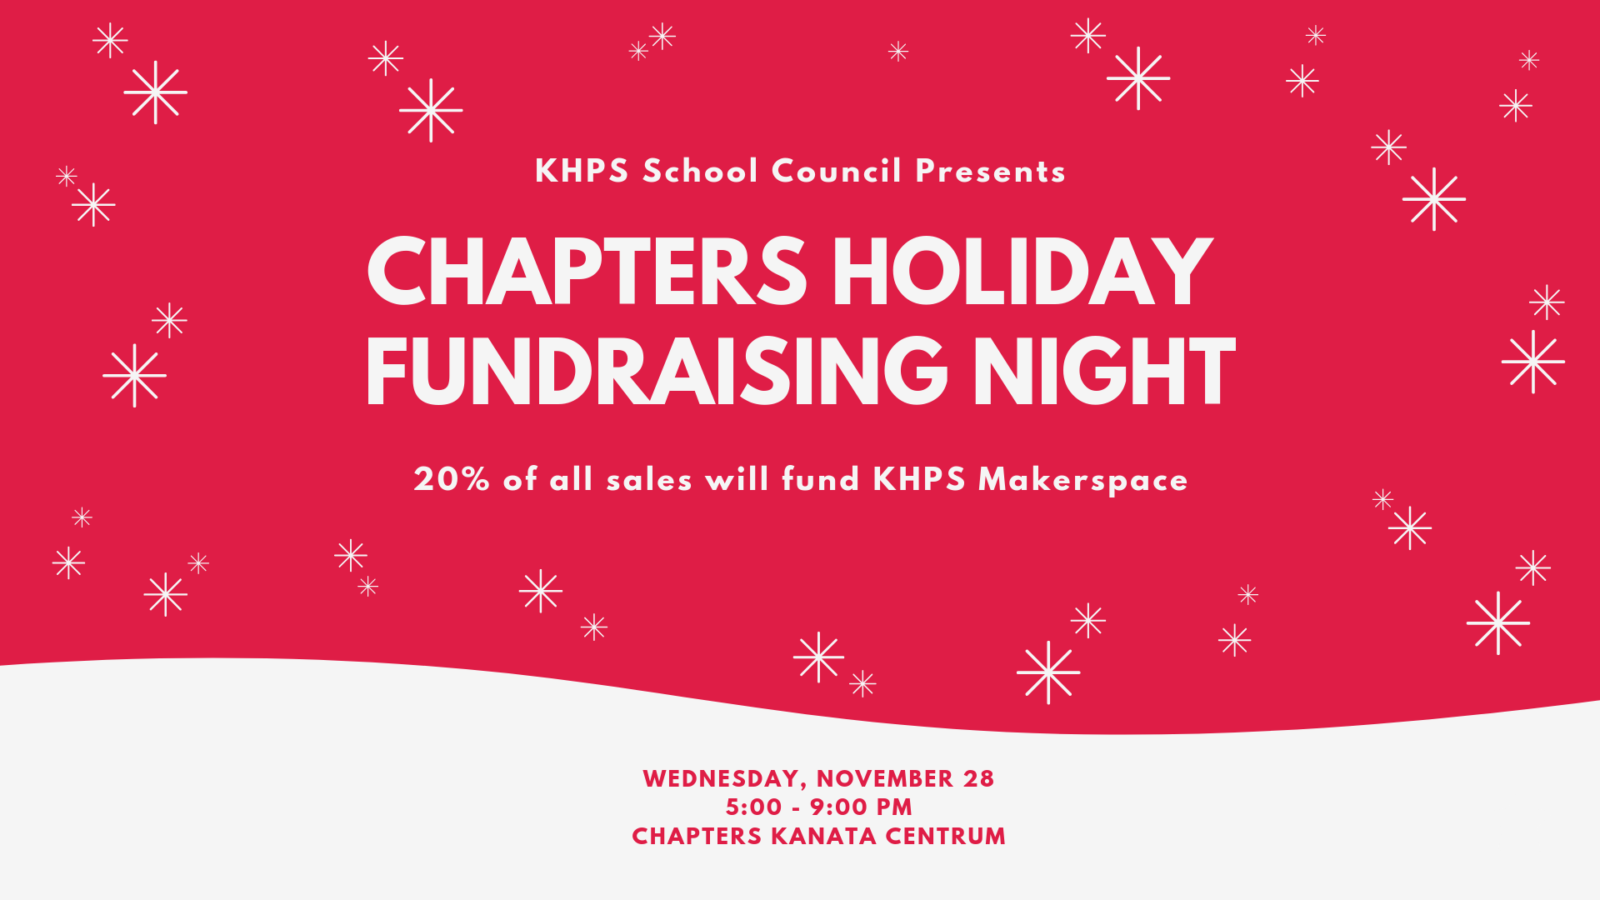 Chapters Holiday Fundraising Night